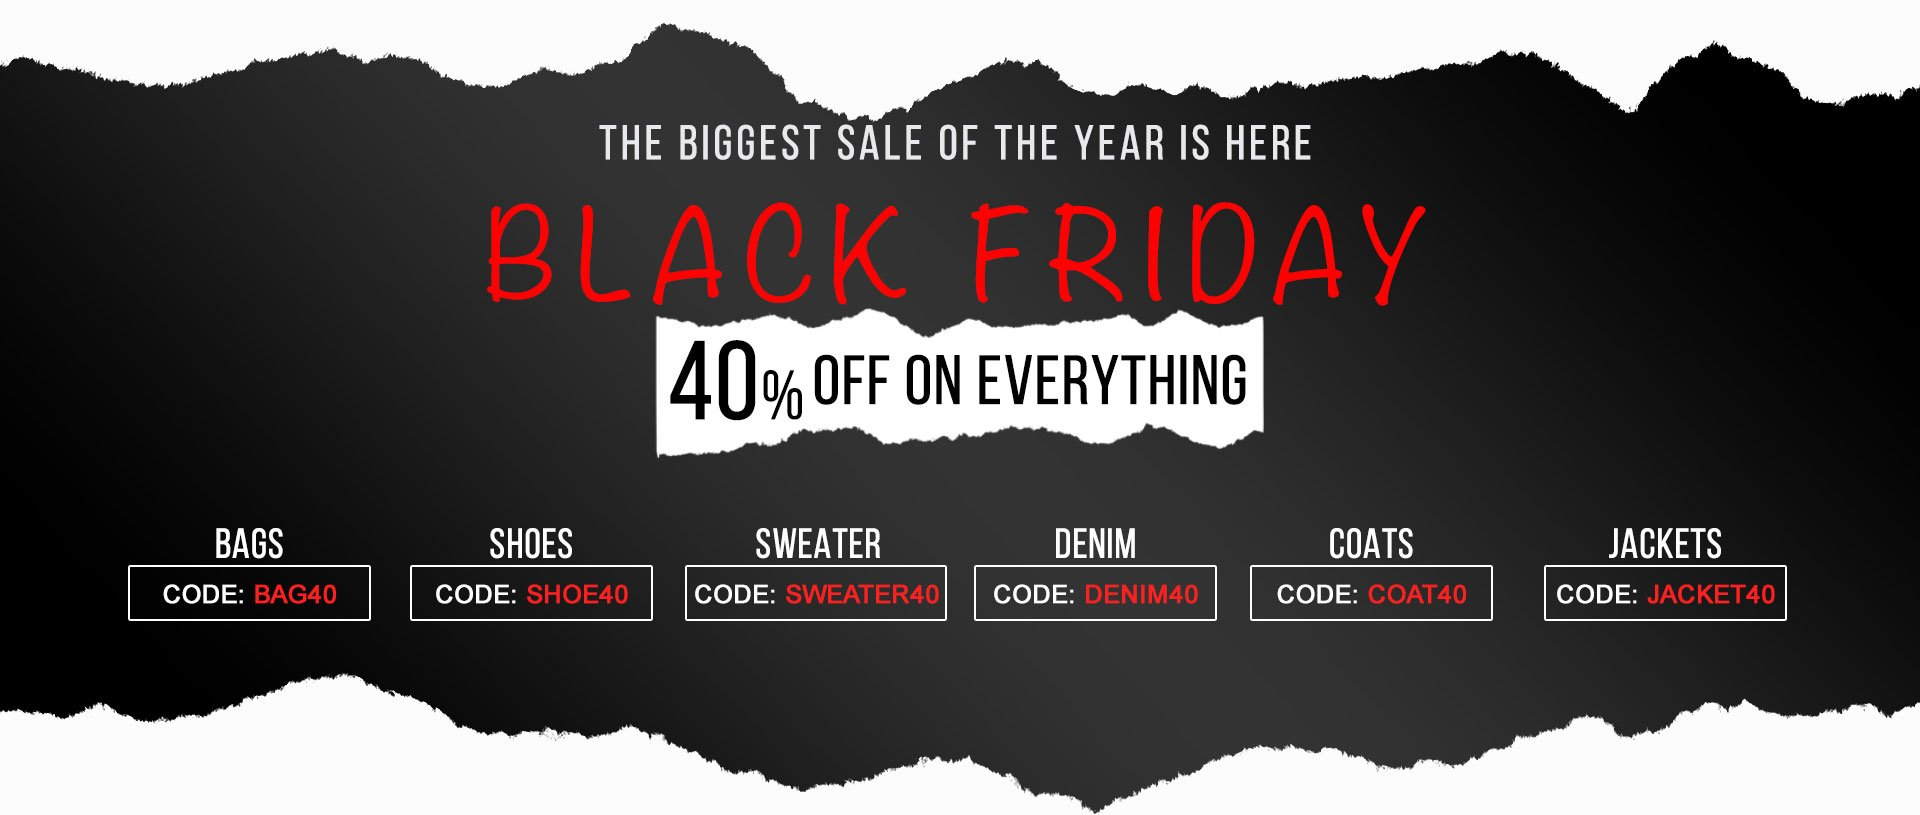 Black Friday Sales on Fashion Products You Can't Afford to Miss!